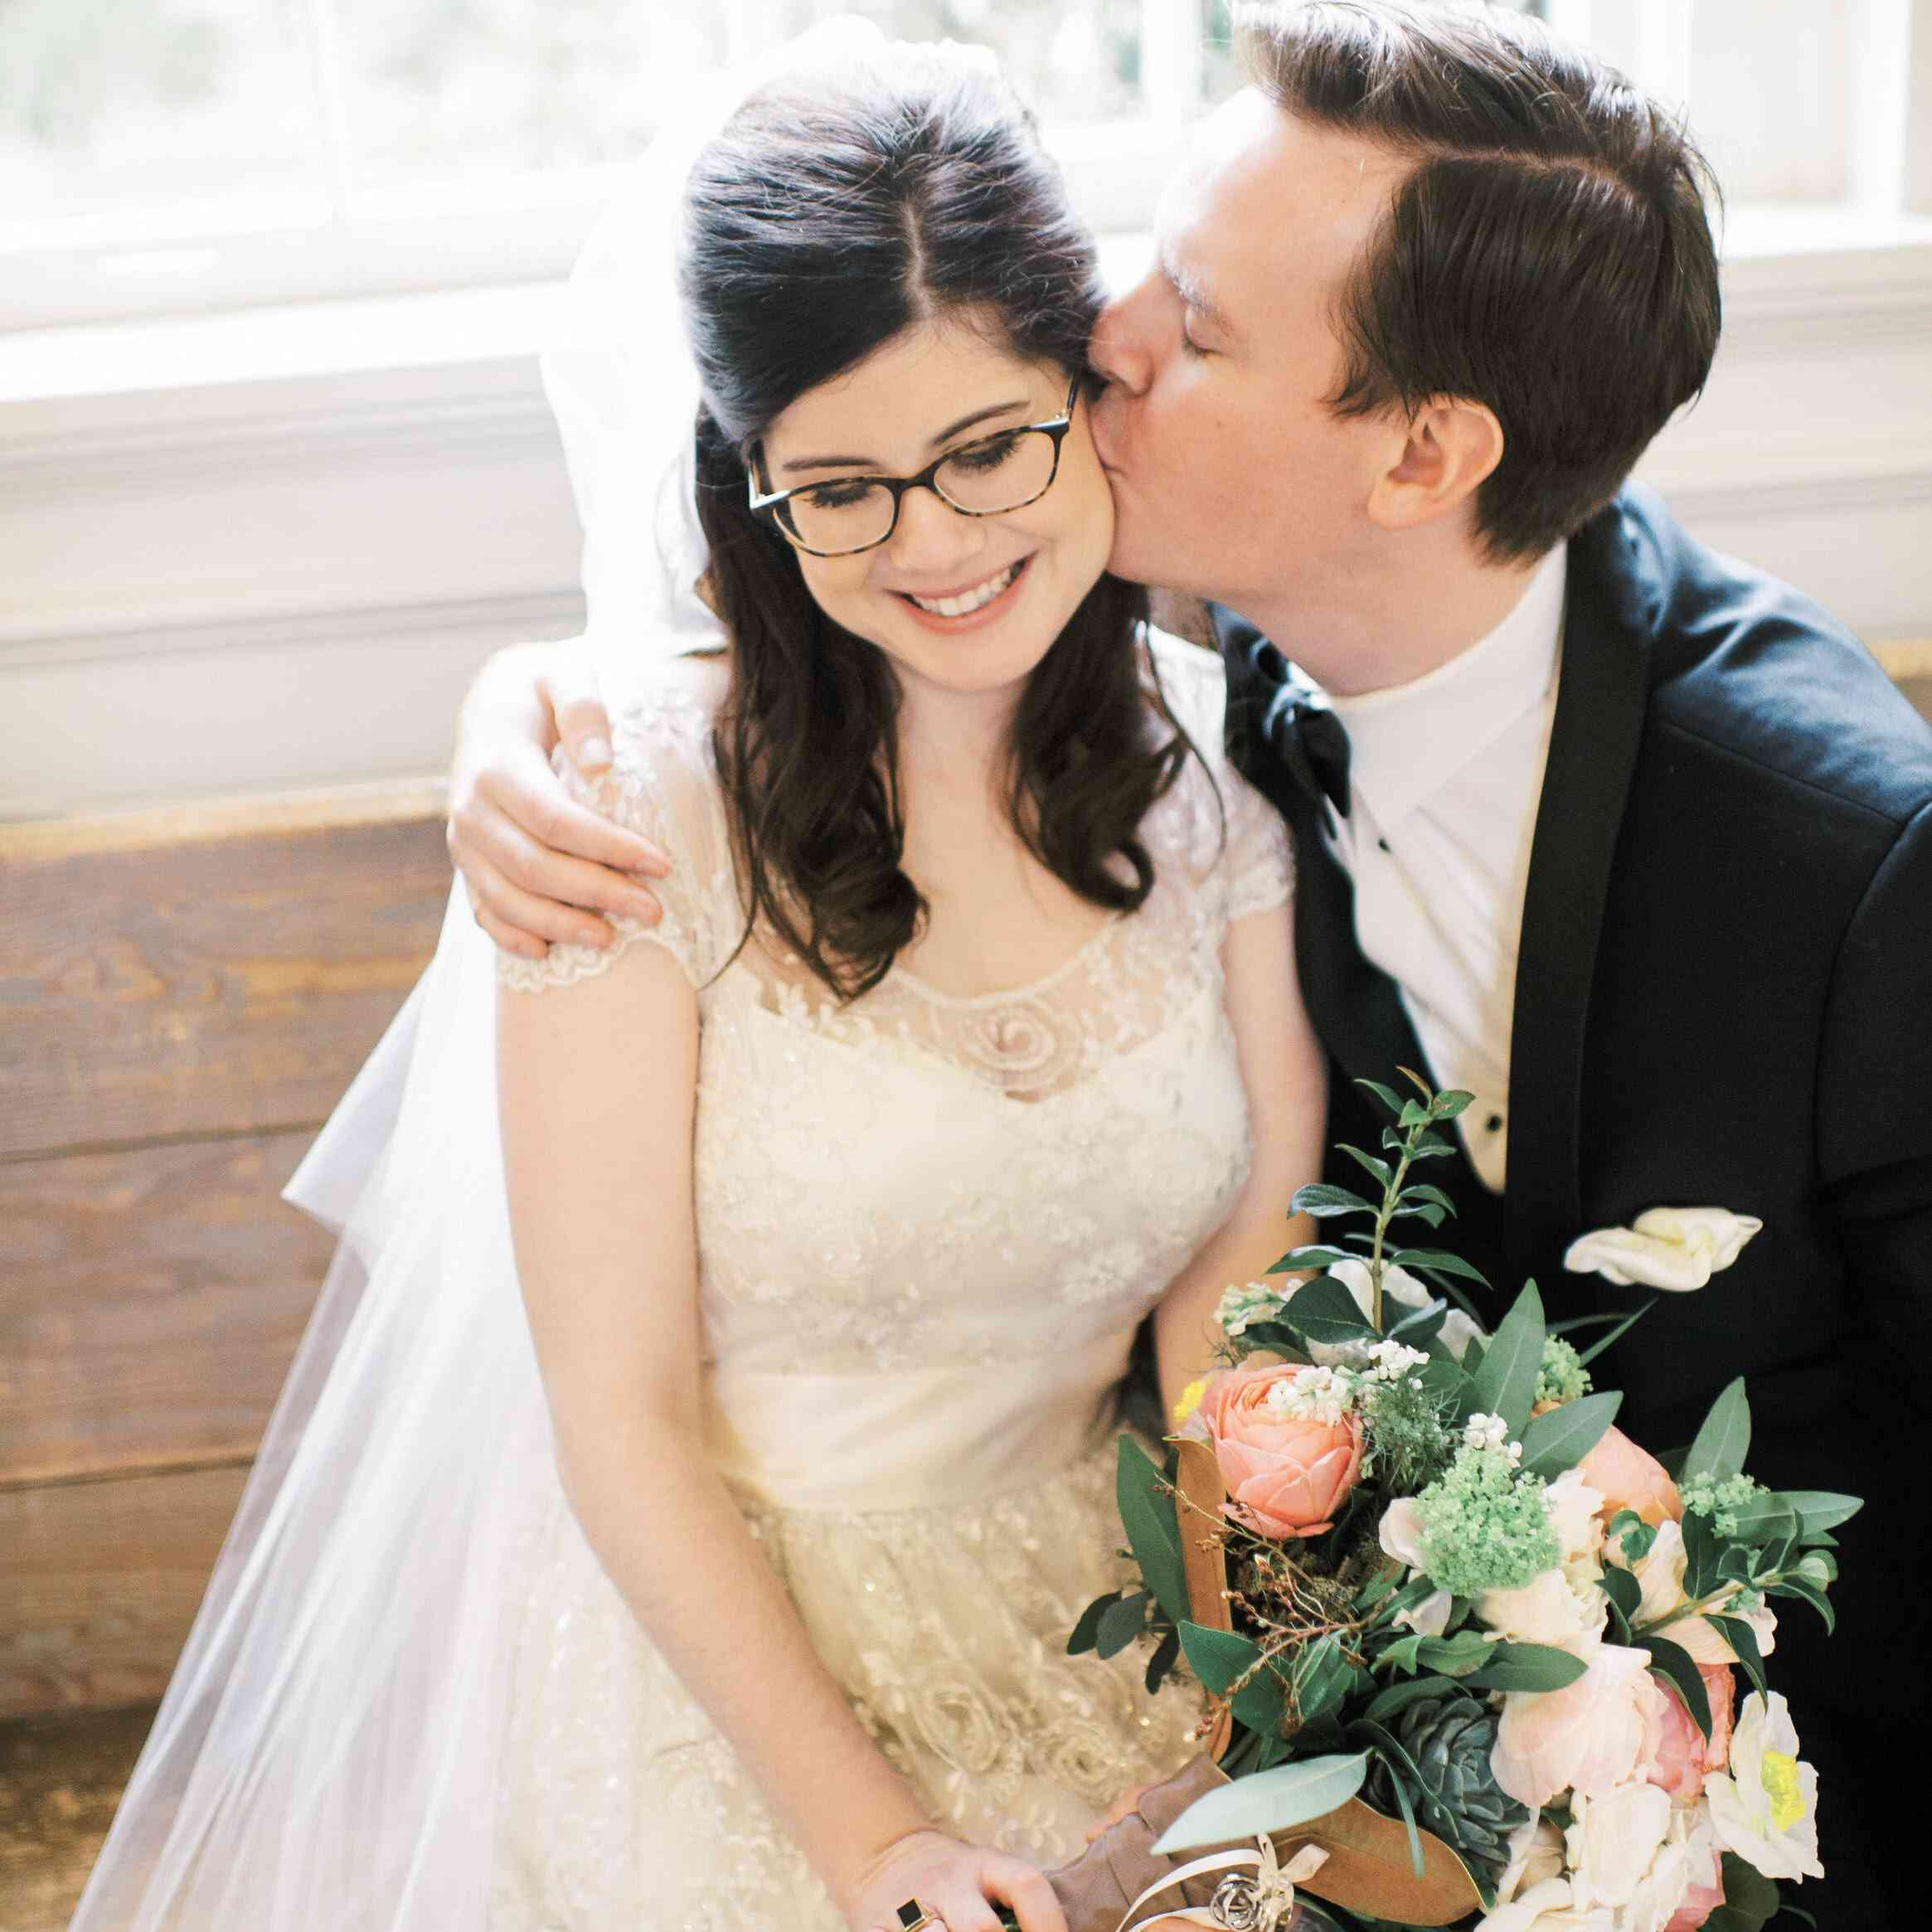 Groom kissing his bride on the cheek, who is wearing glasses and holding a bouquet